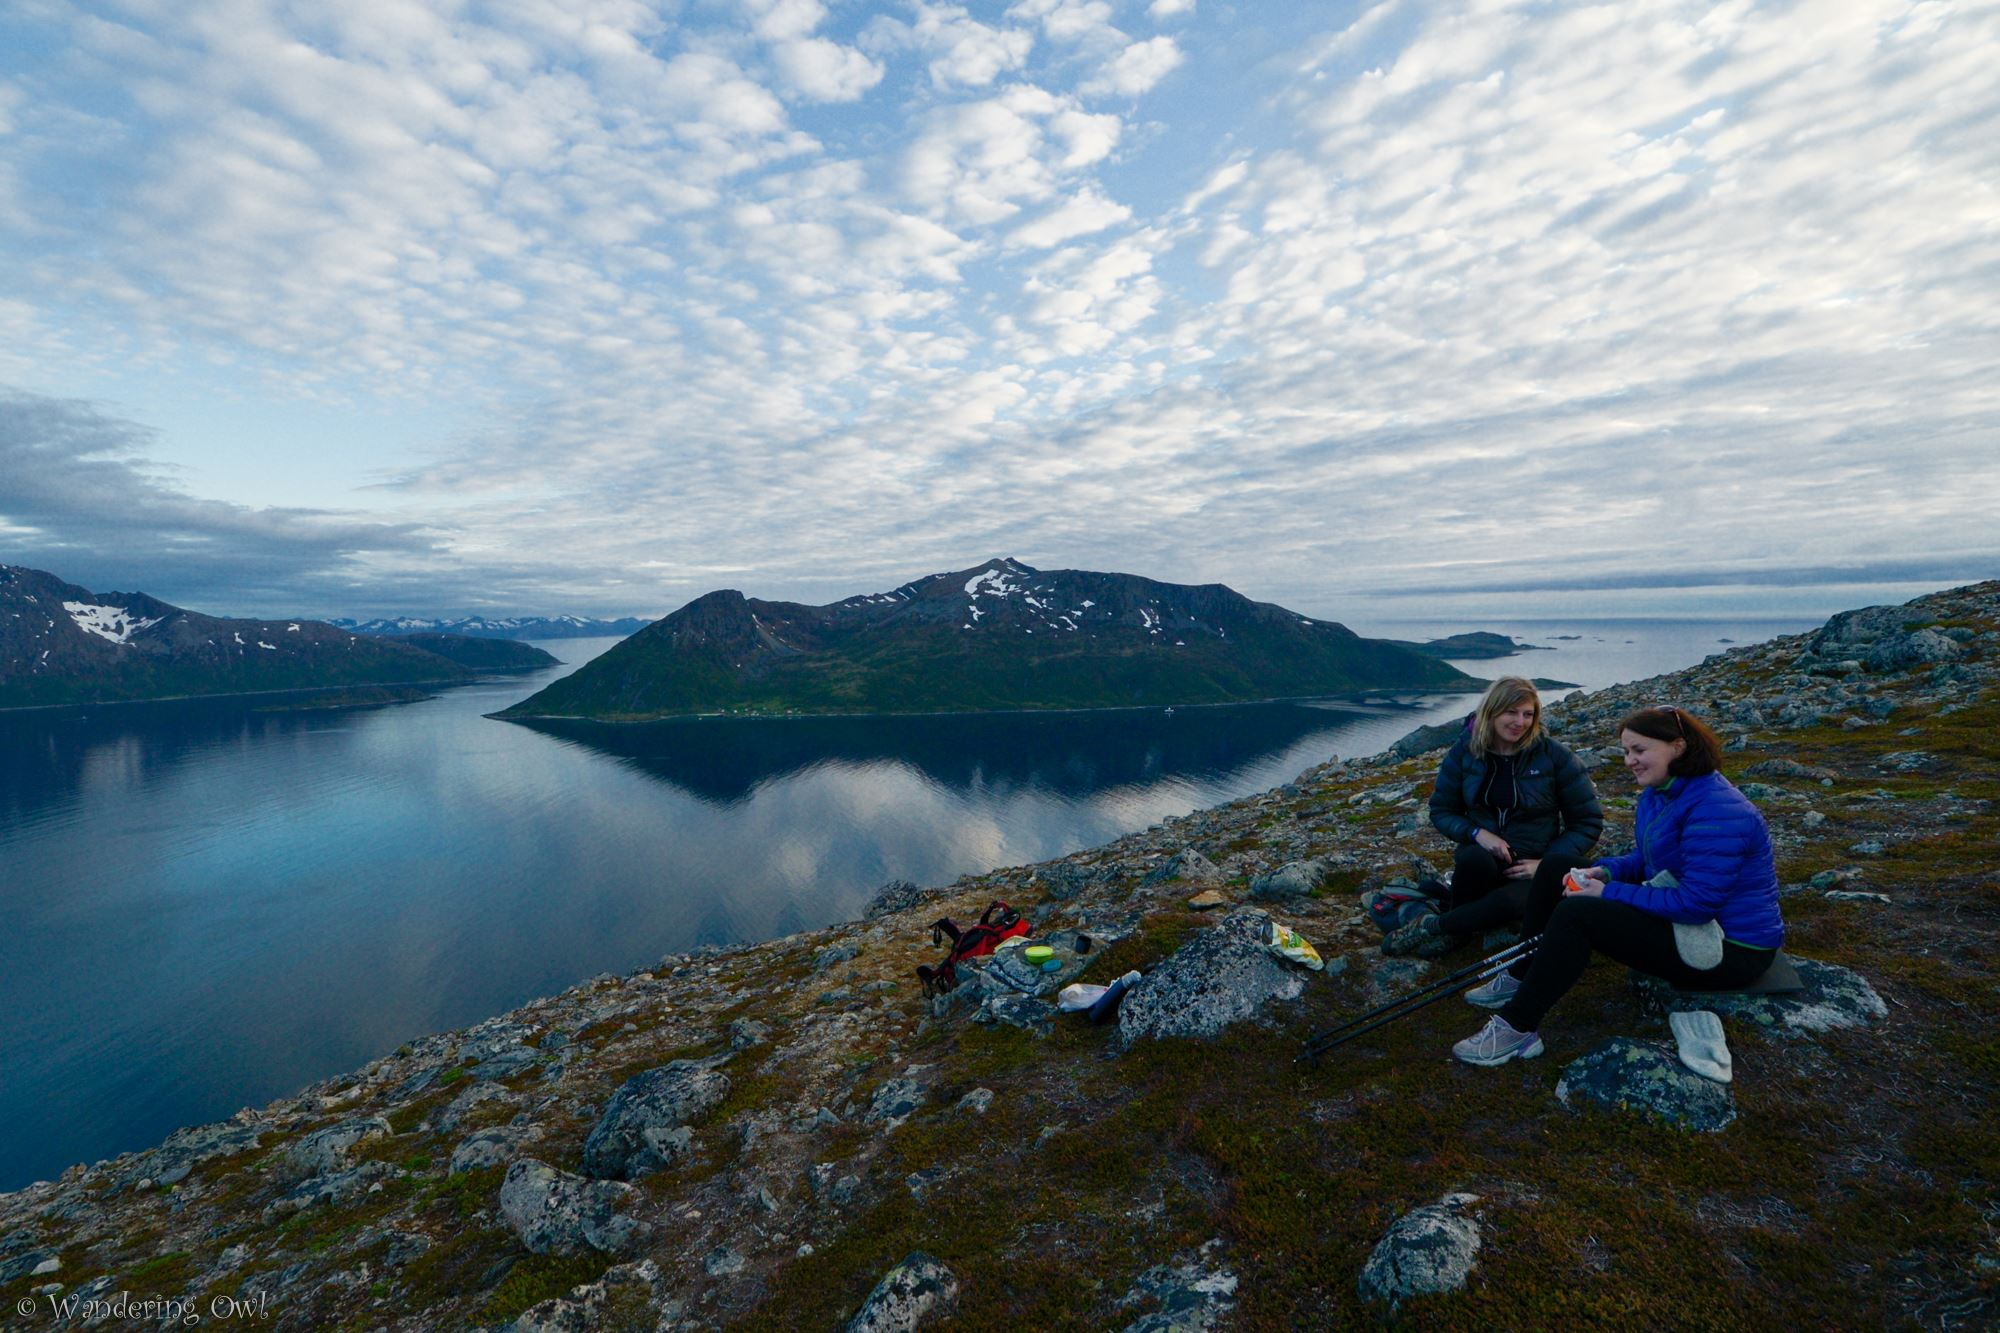 Take a Walk on the Wild Side - a hike on Kvaløya